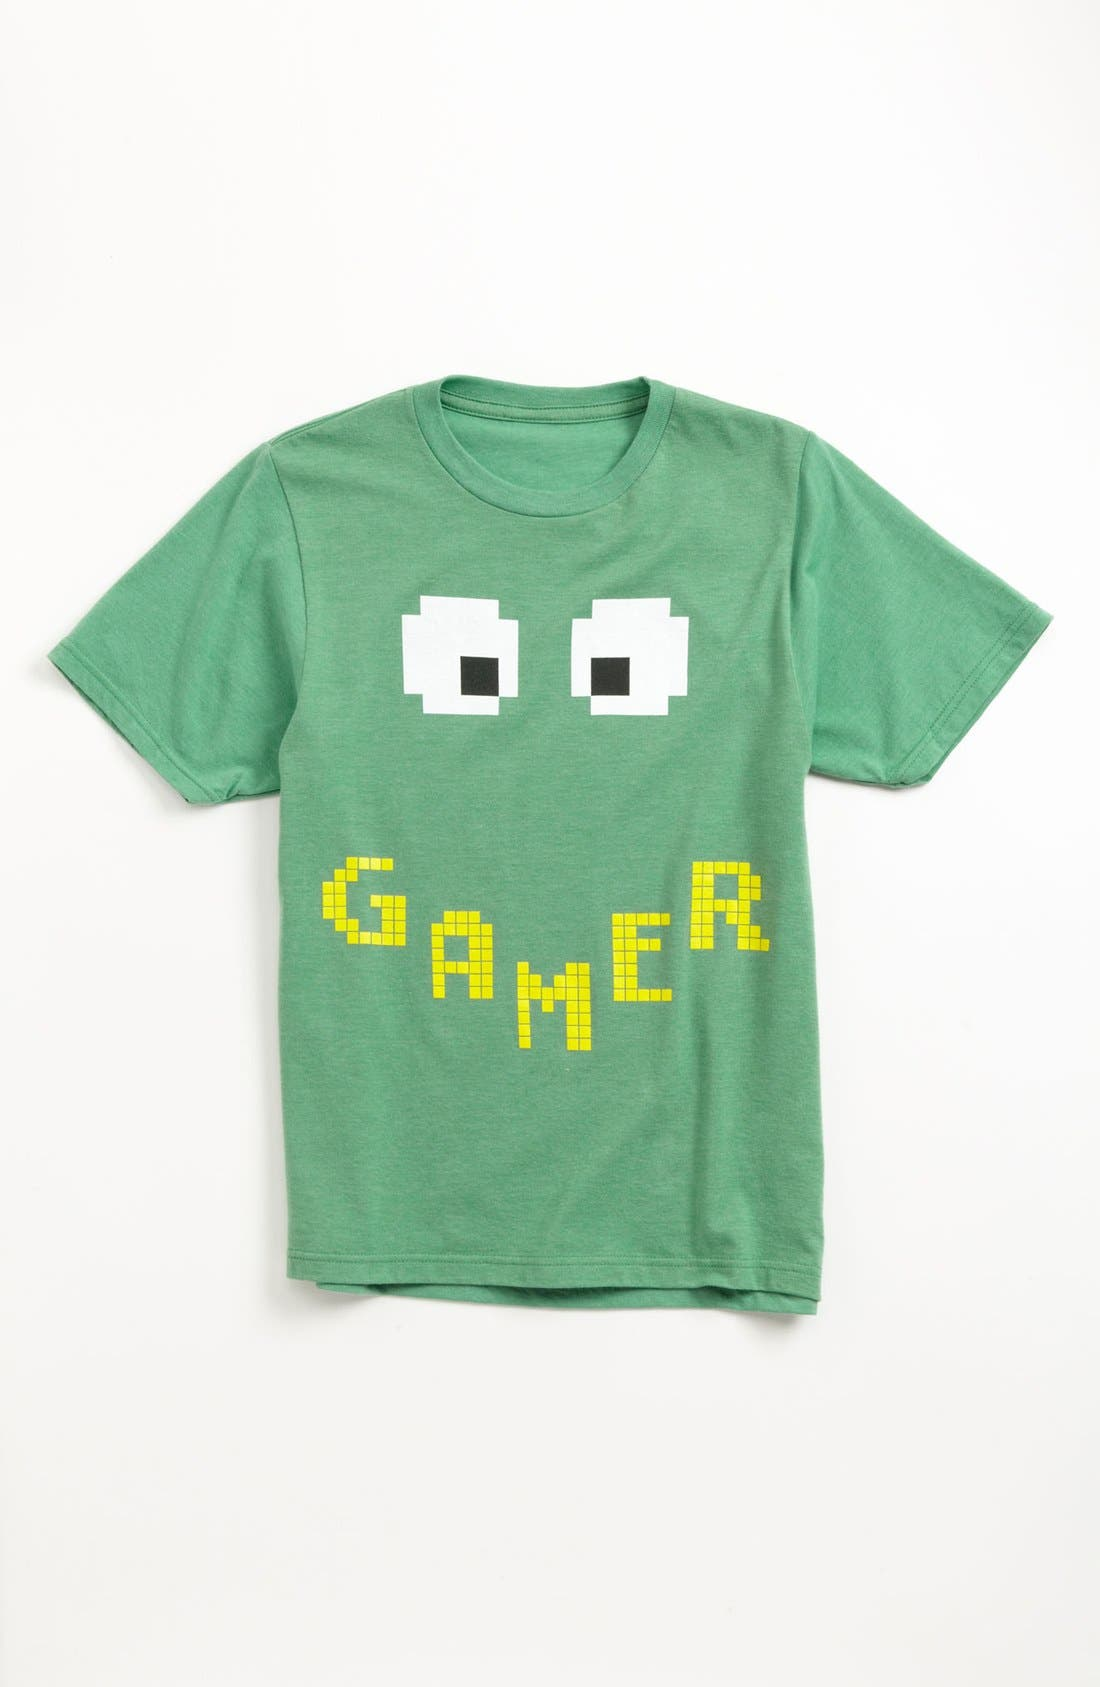 Main Image - Jem 'Gamer Glow' T-Shirt (Big Boys)